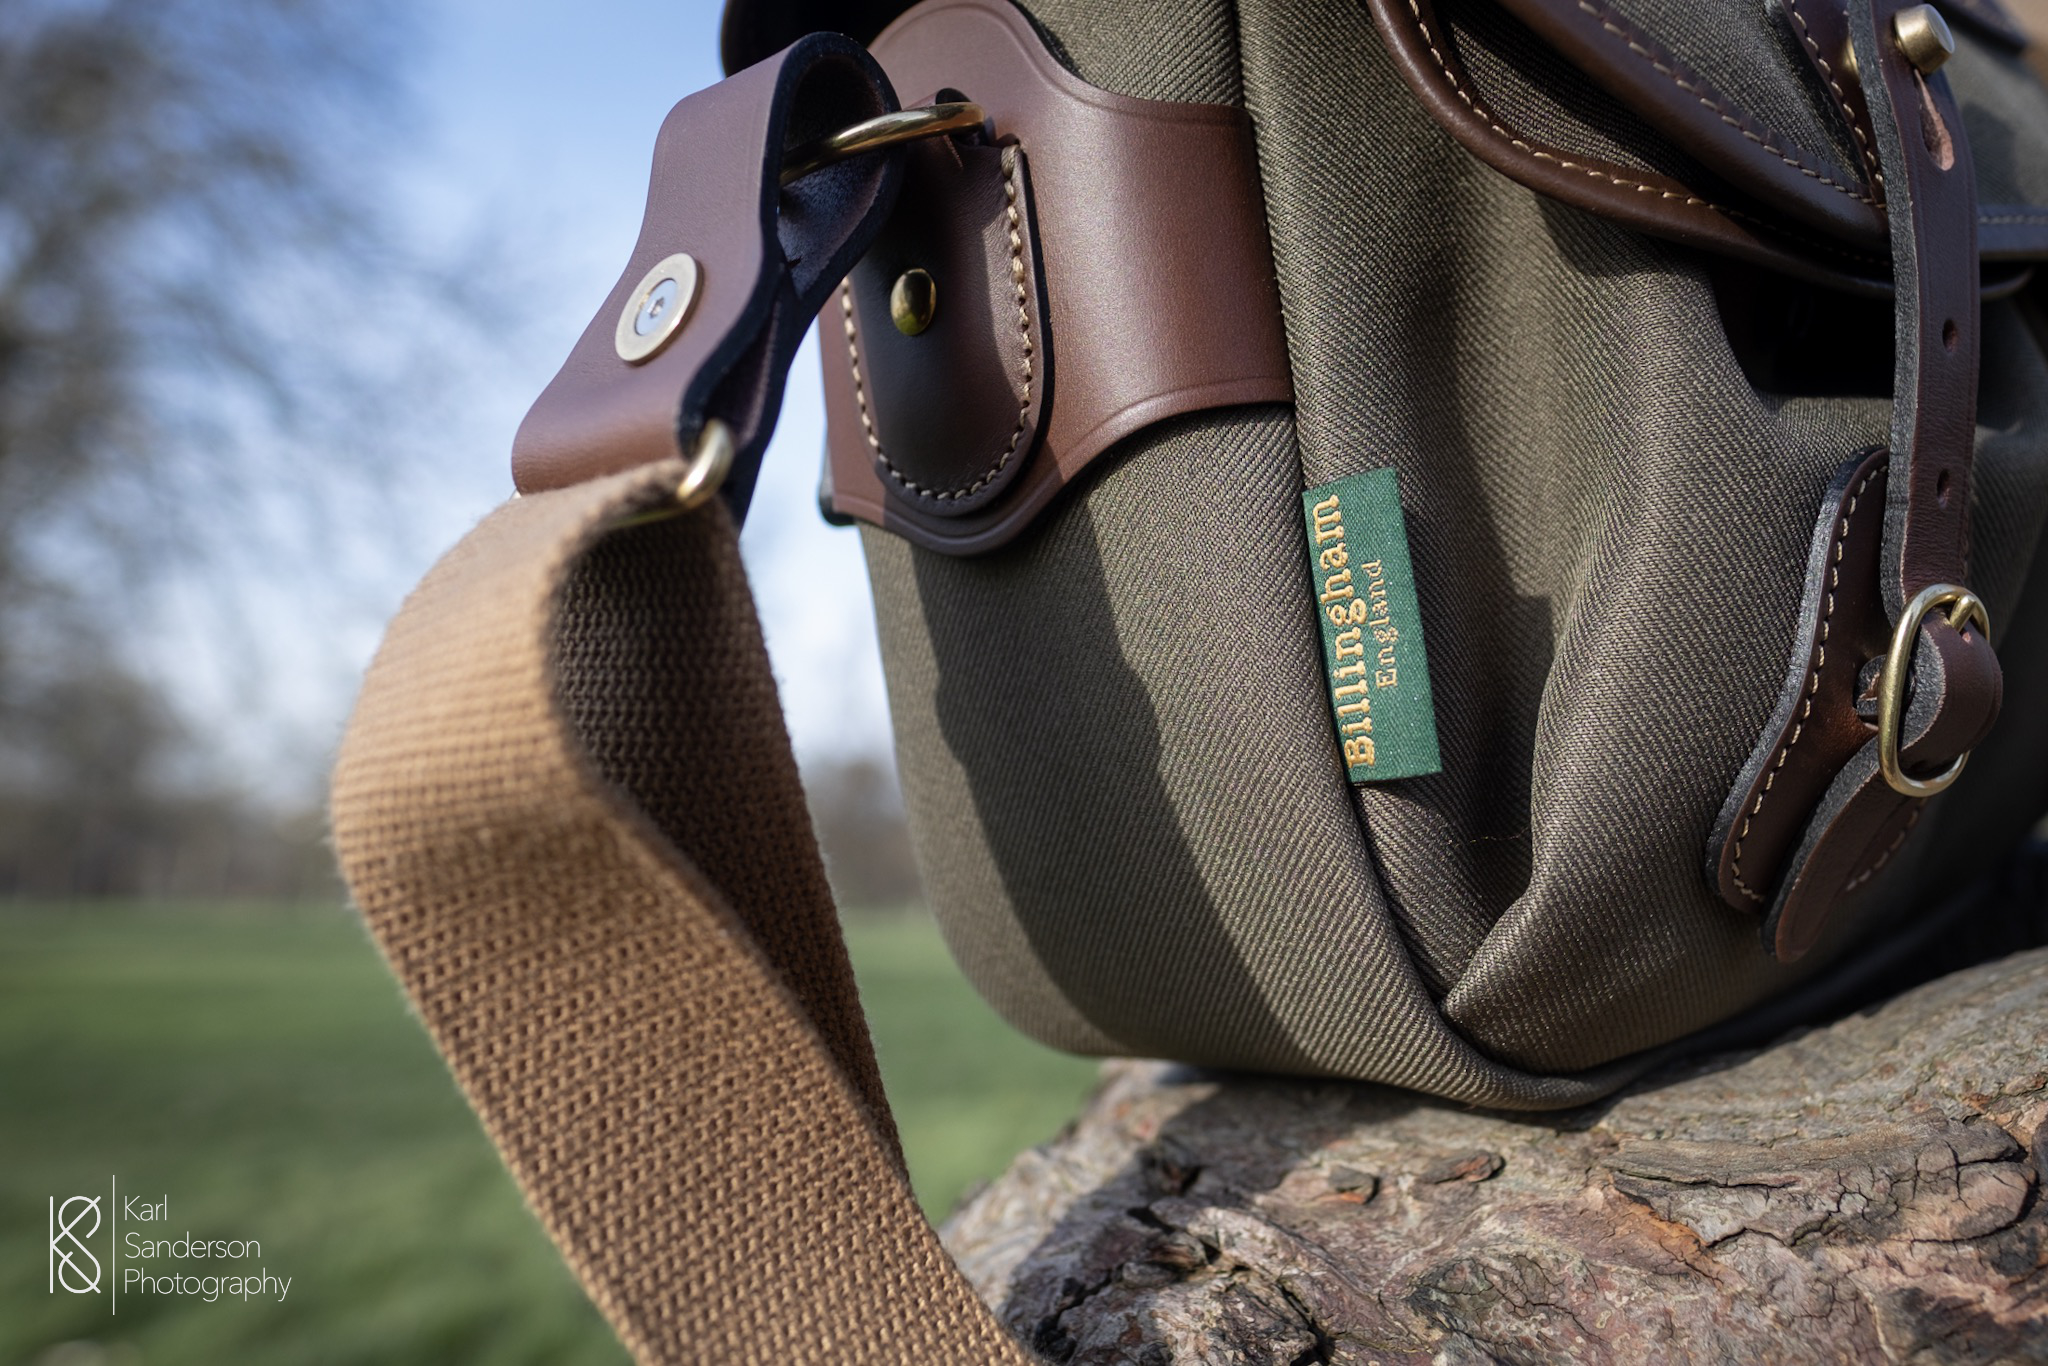 Billingham uses high quality materials including durable webbing, full grain leather, brass fixtures and canvas/FibreNyte fabric. The main fabric of the bag is bonded to a butyl rubber membrane in order to provide protection from rain.